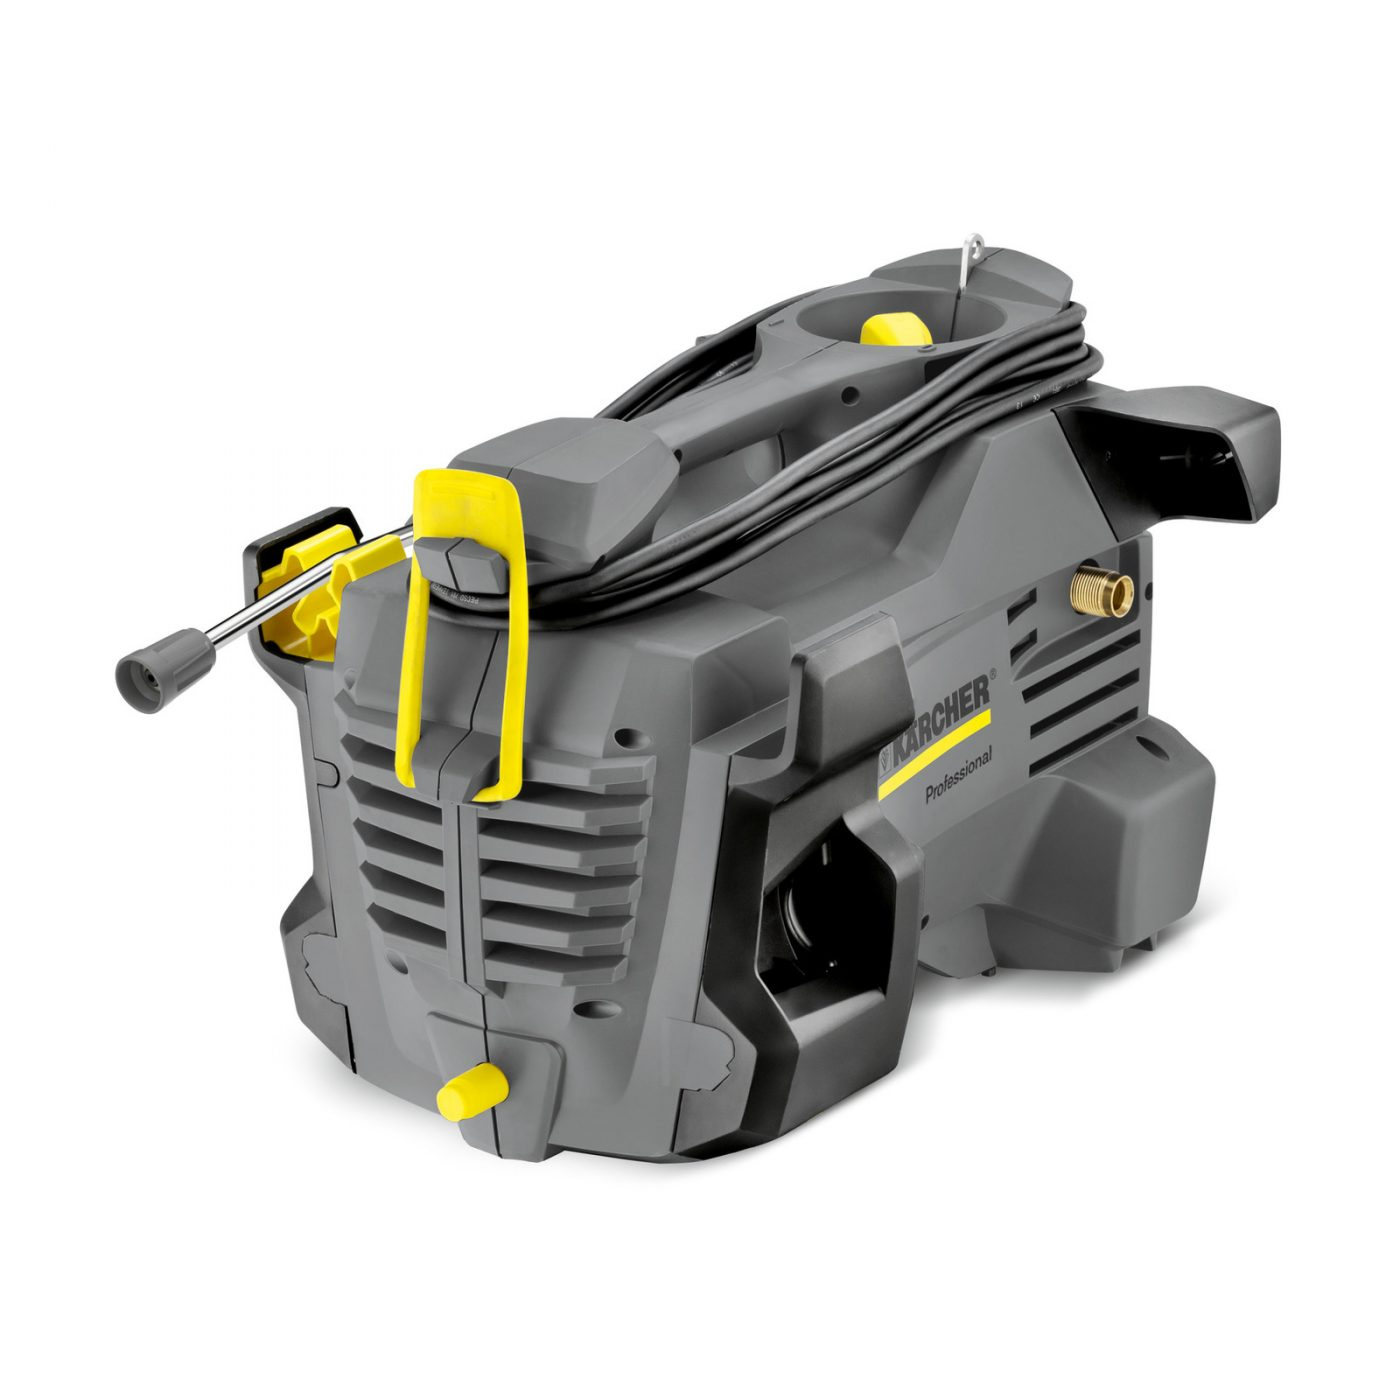 KARCHER 1.520-980.0 - ProHD 200 High Pressure Washer